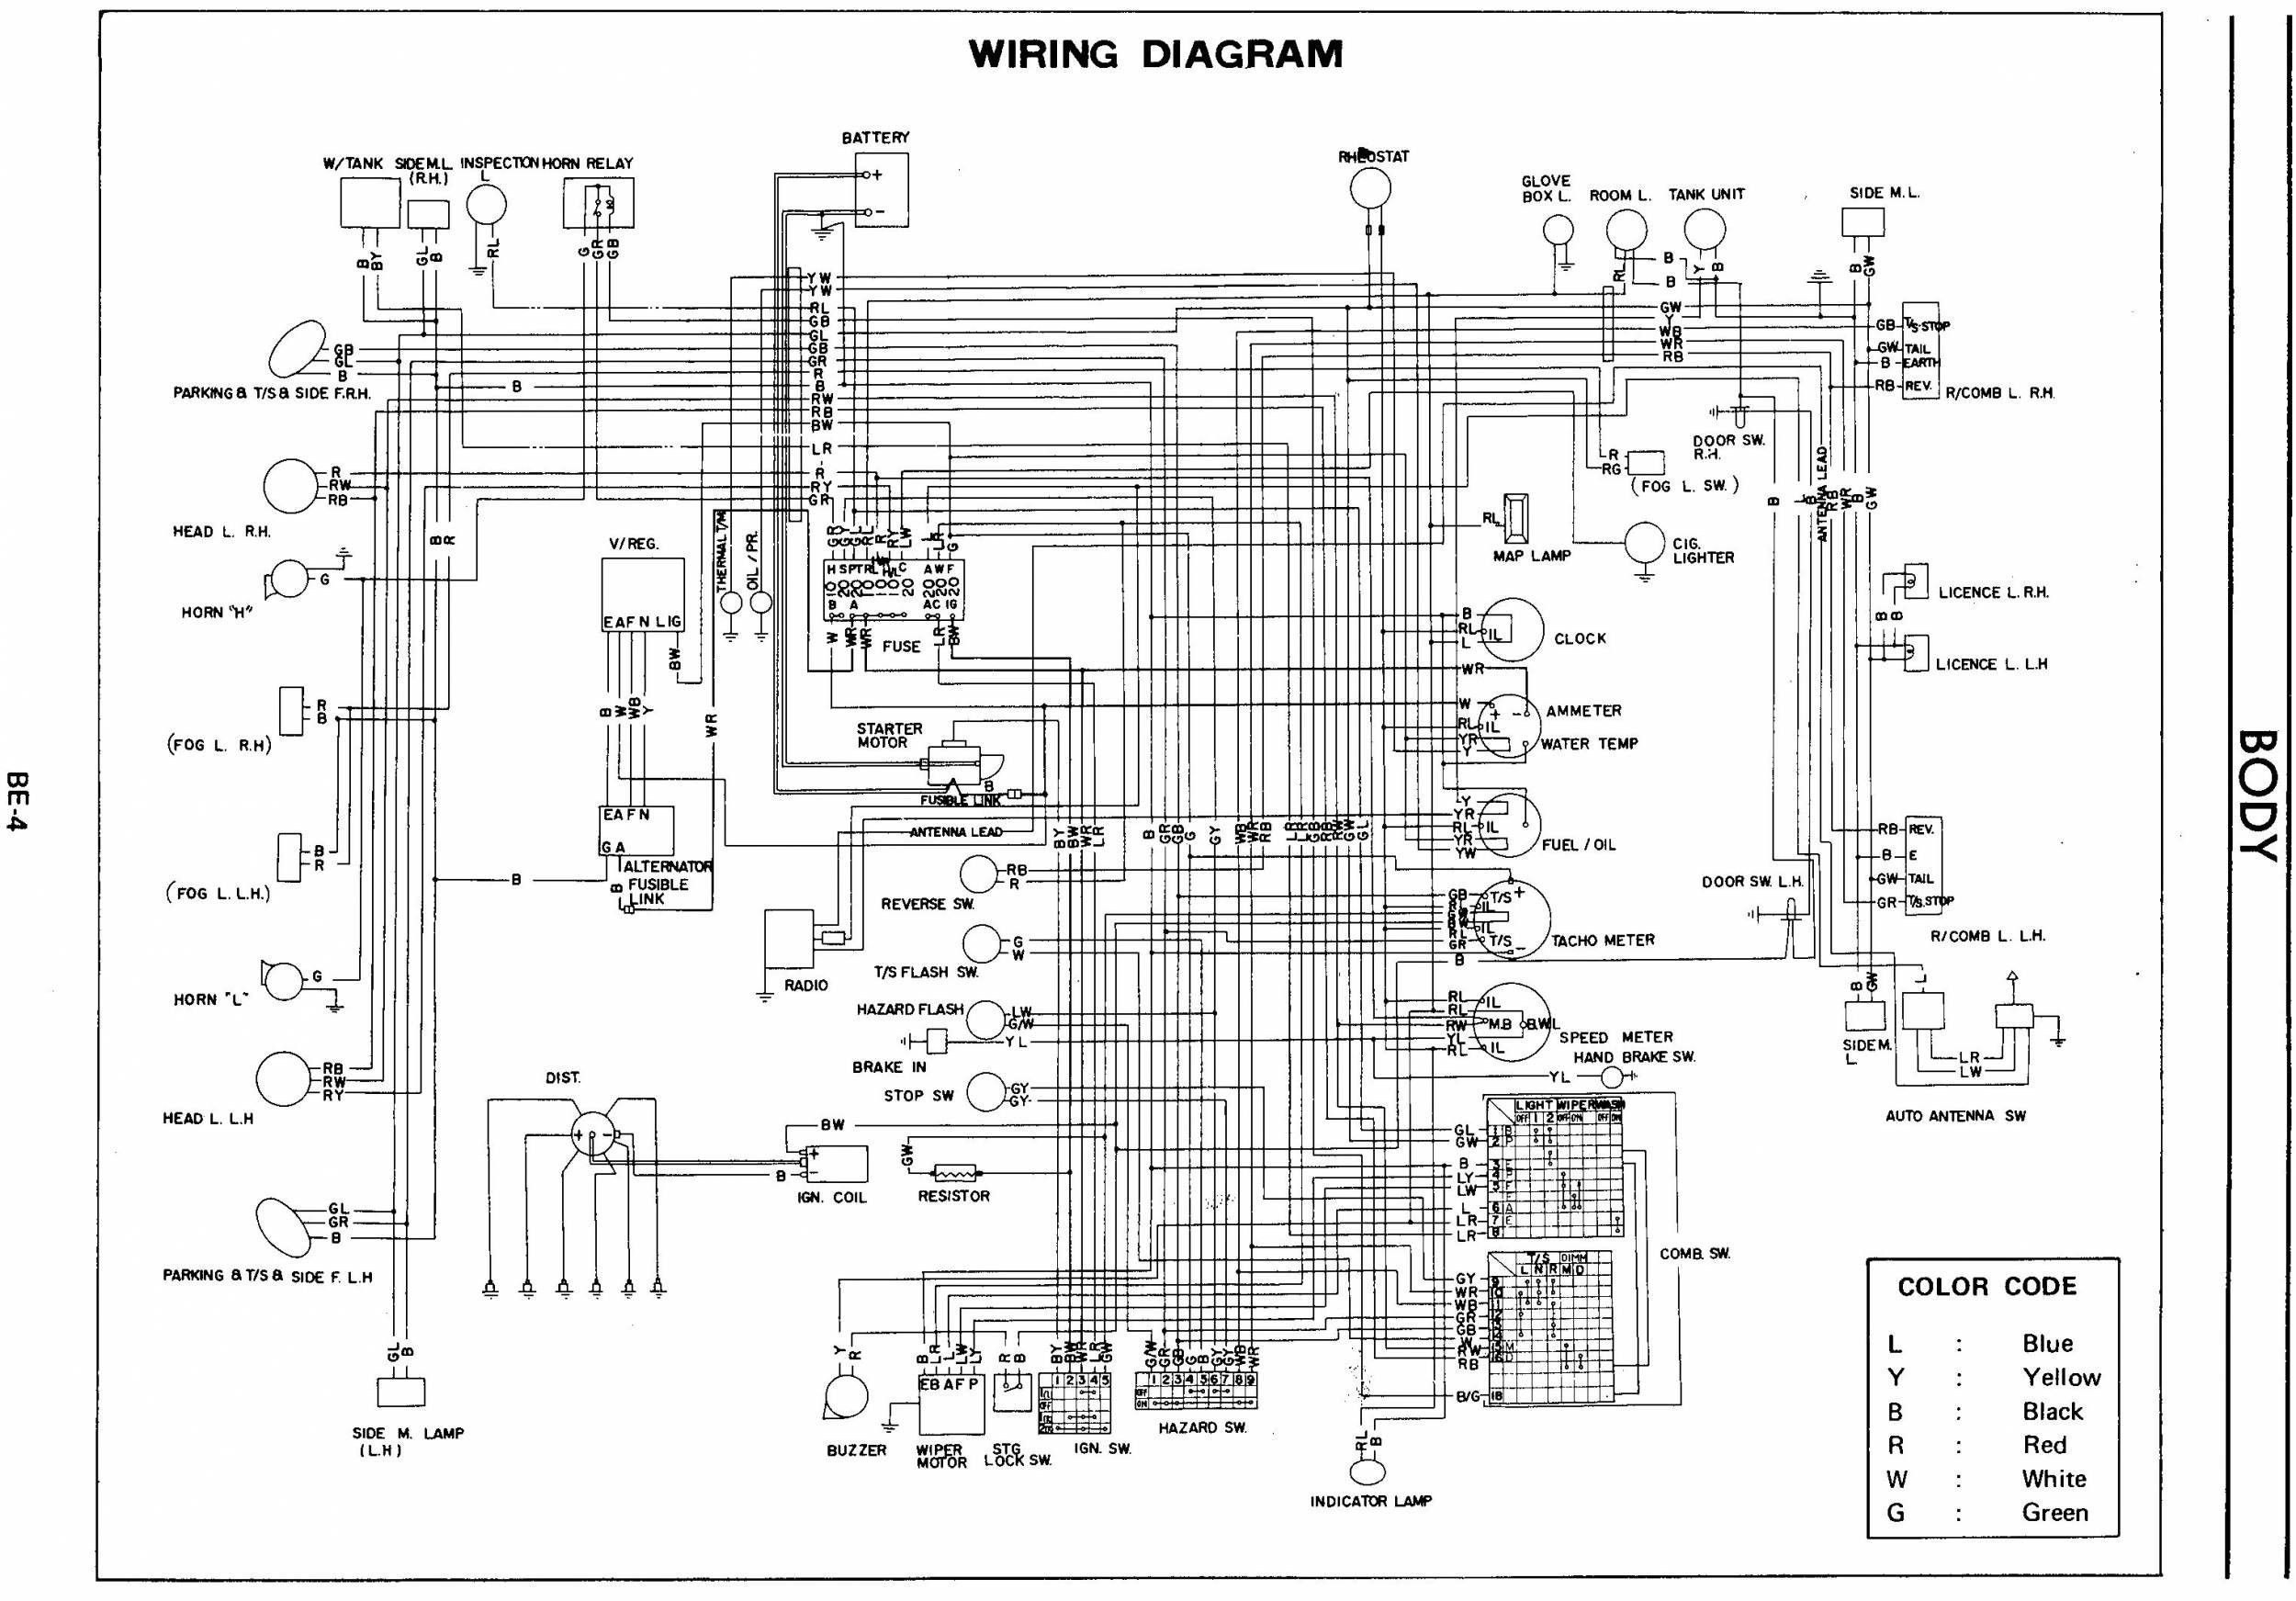 mercedes benz wiring harness diagram wiring diagram blogmercedes wire harness diagram library wiring diagram subaru wiring harness diagram mercedes benz wiring harness diagram